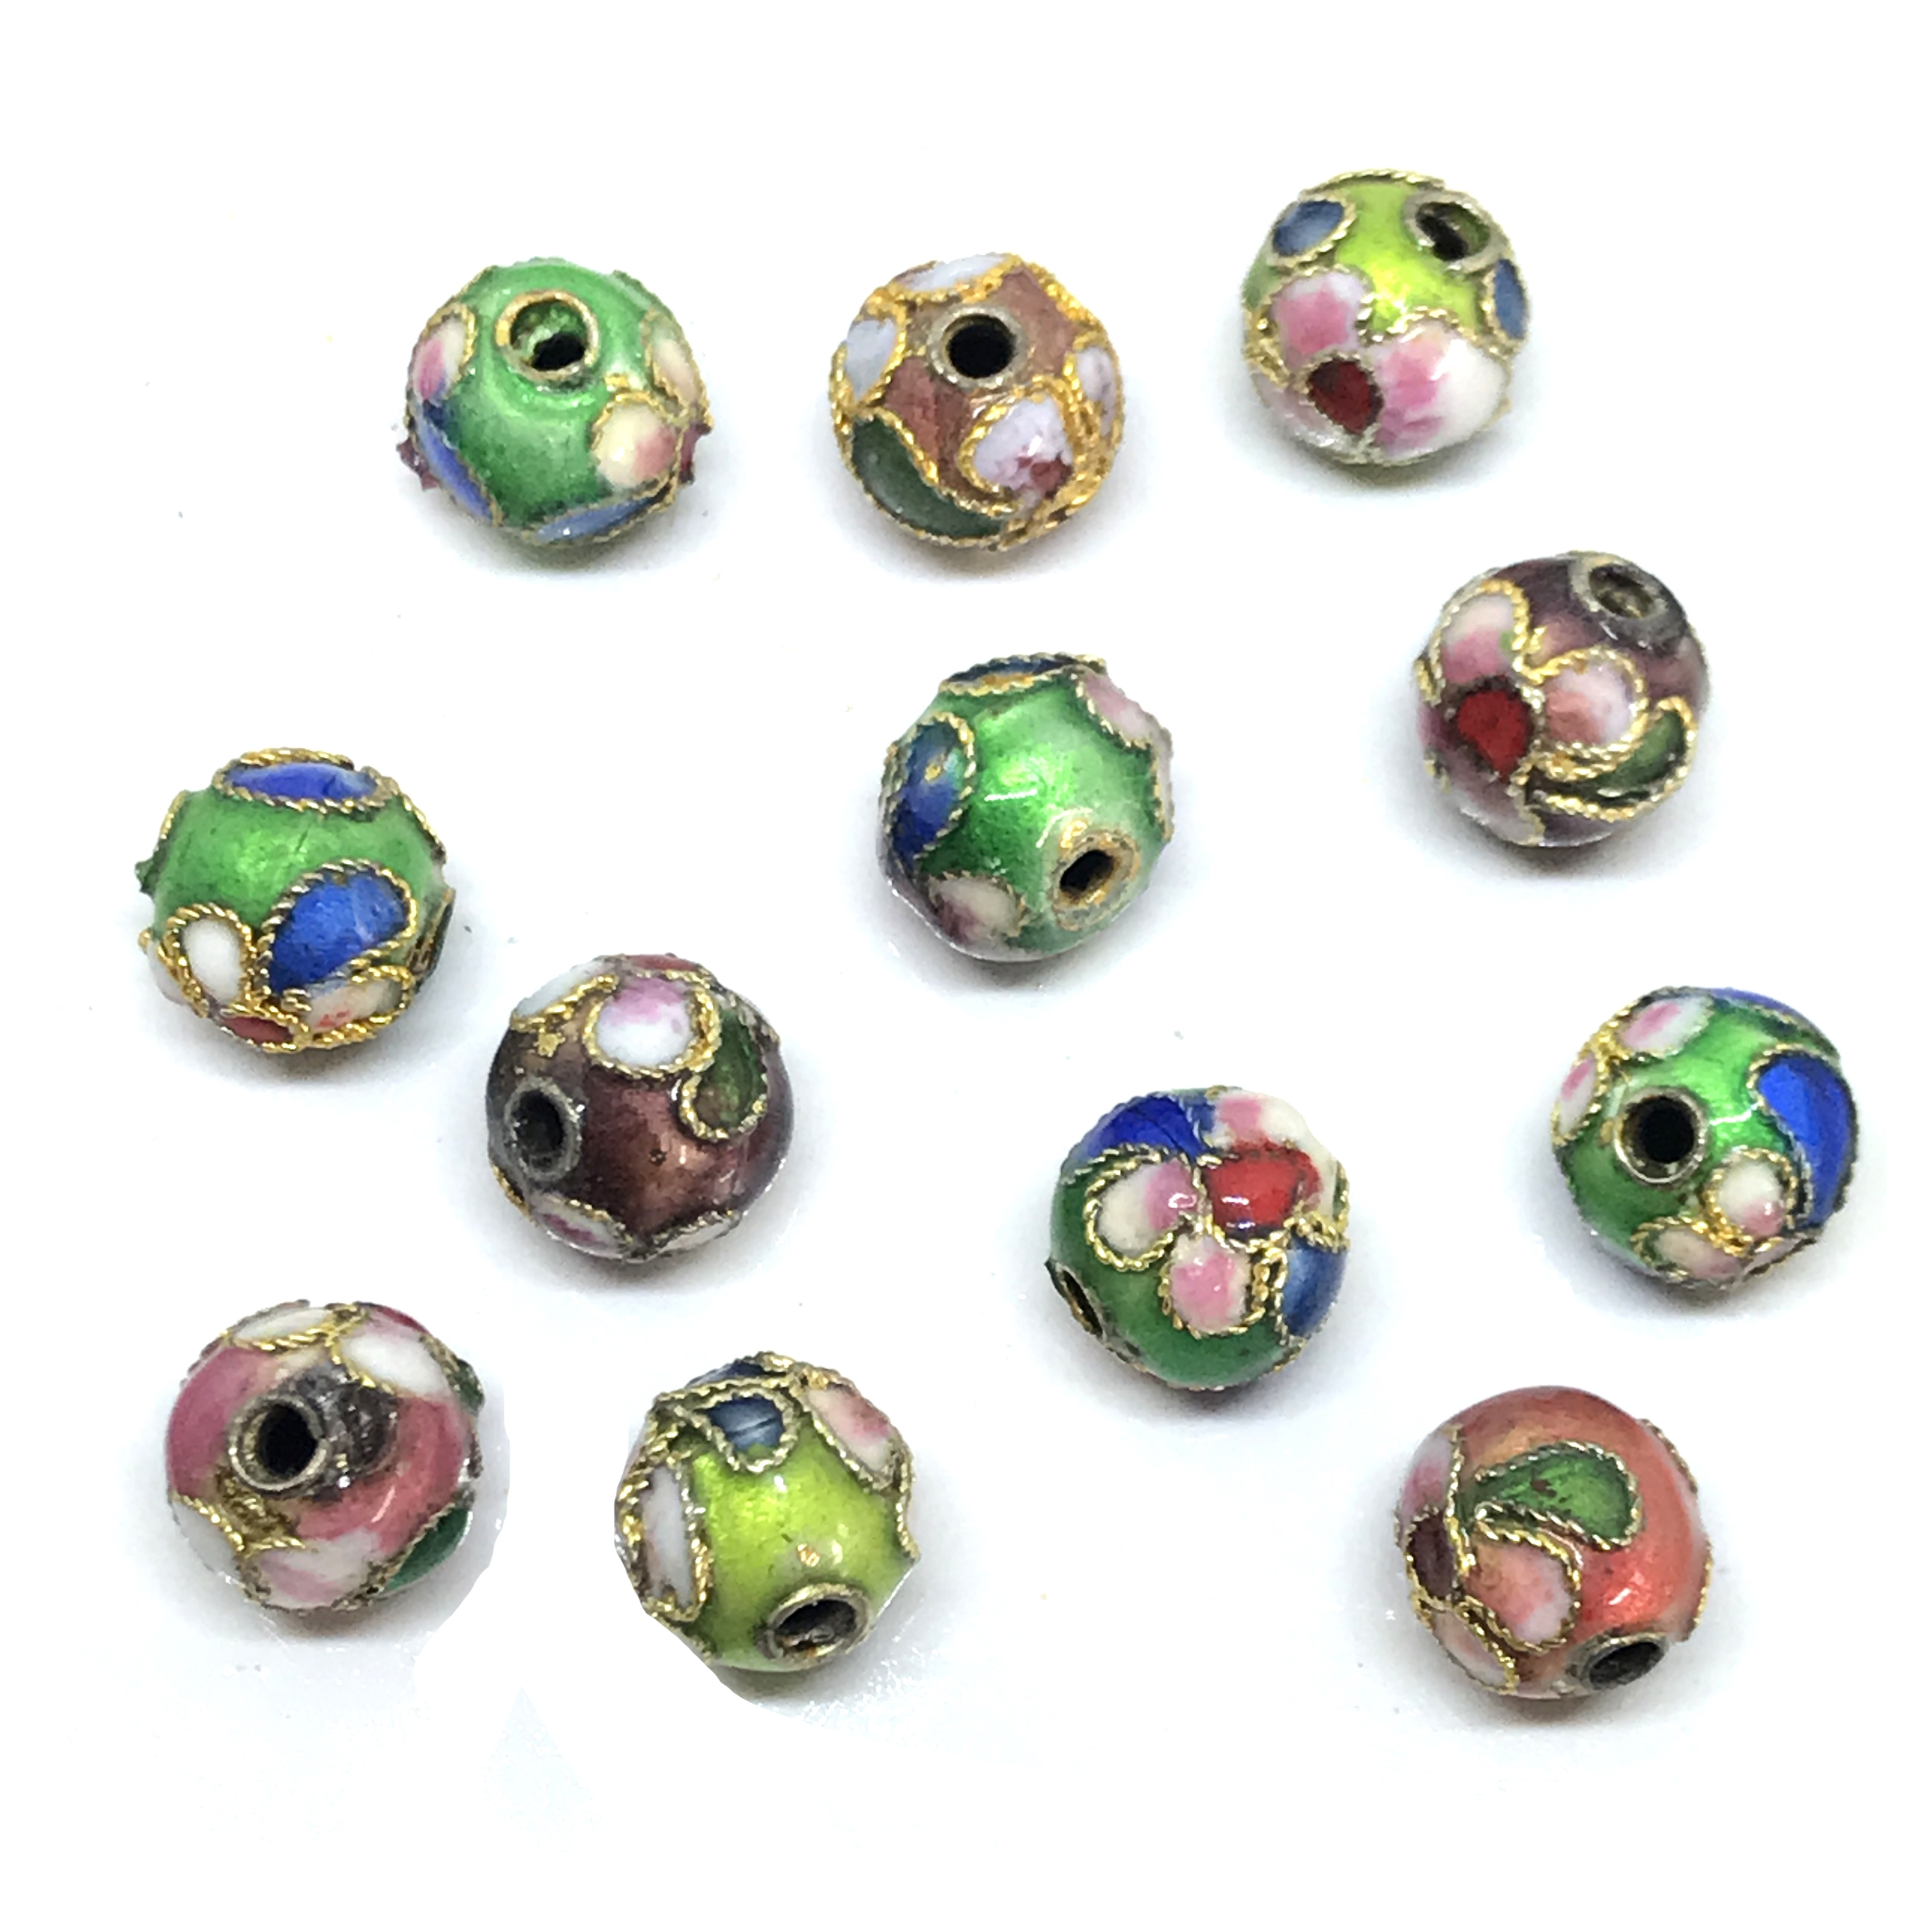 Vintage Handmade Cloisonne Beads, 12 Piece, 8mm, 01207, multi-color, cloisonne, beads, metal beads, brass beads, floral beads, flower beads, B'sue